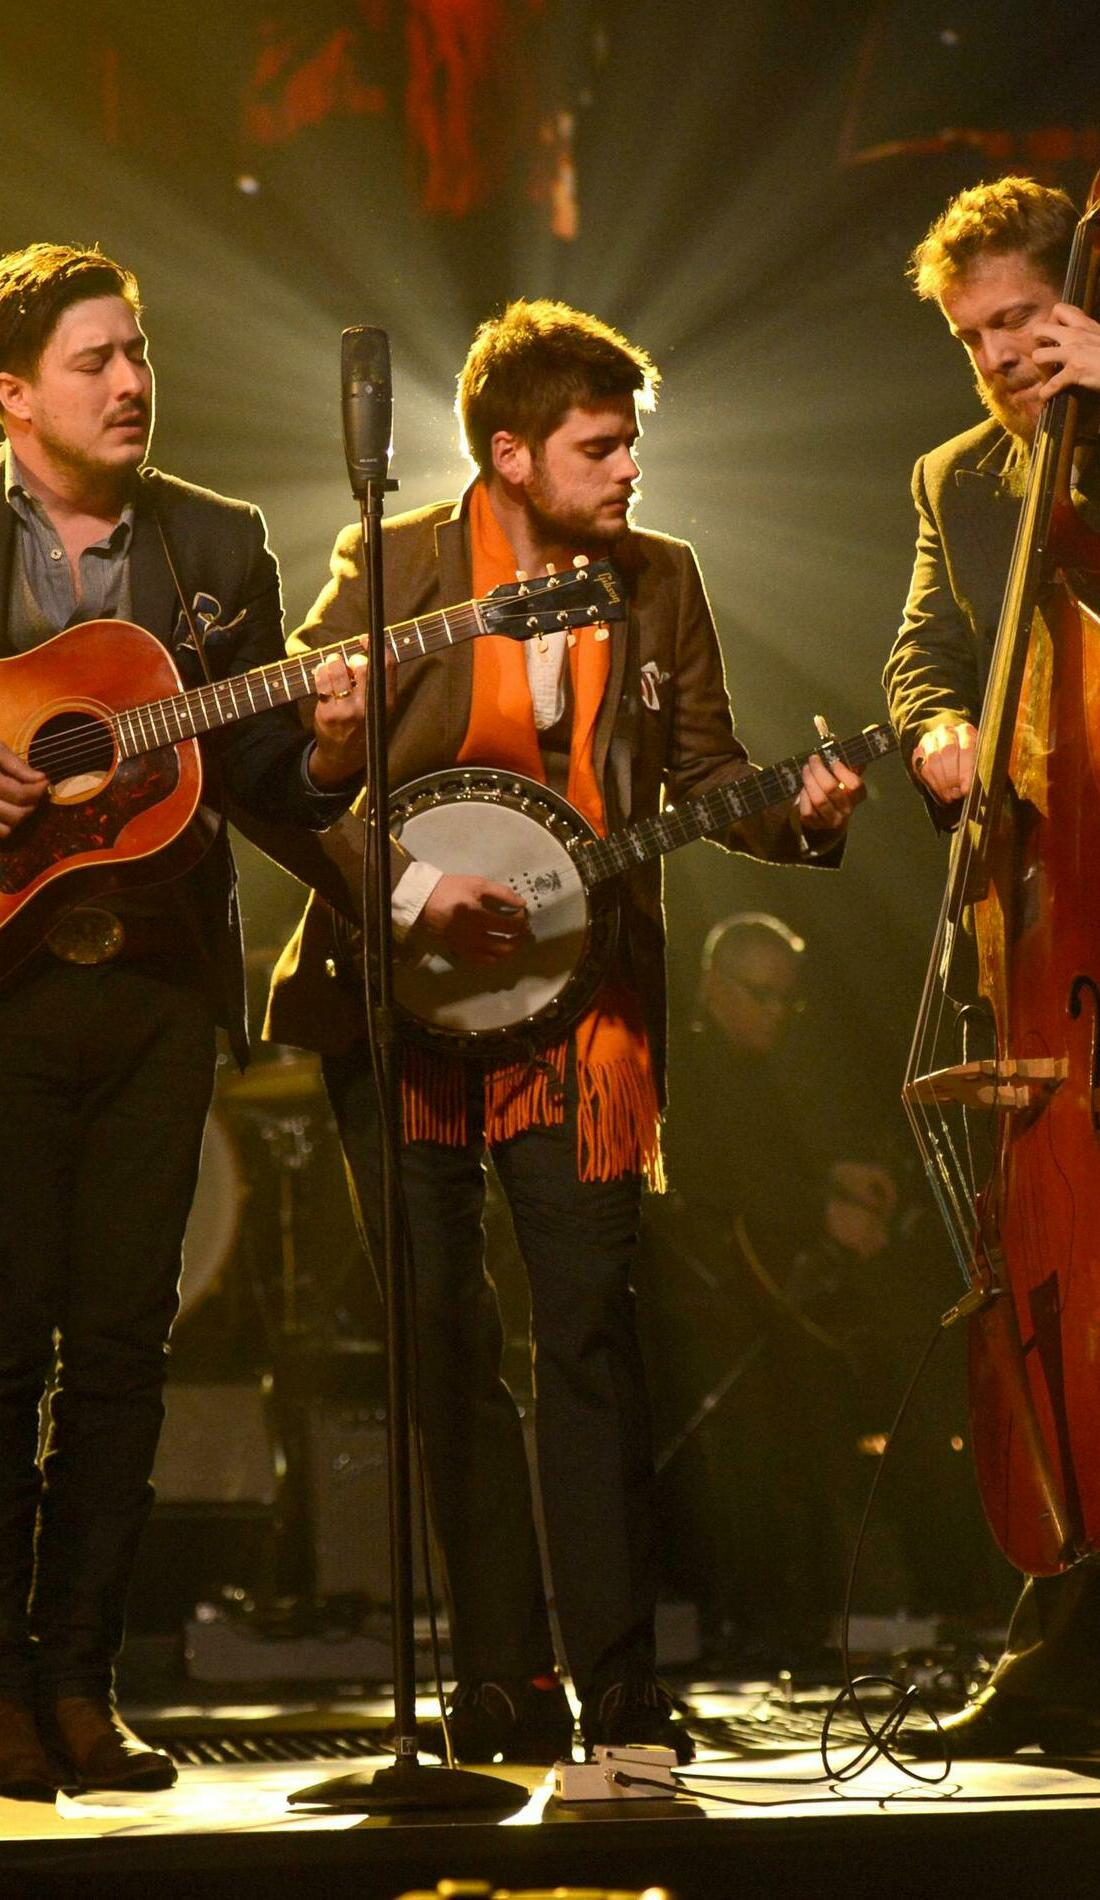 A Mumford & Sons live event